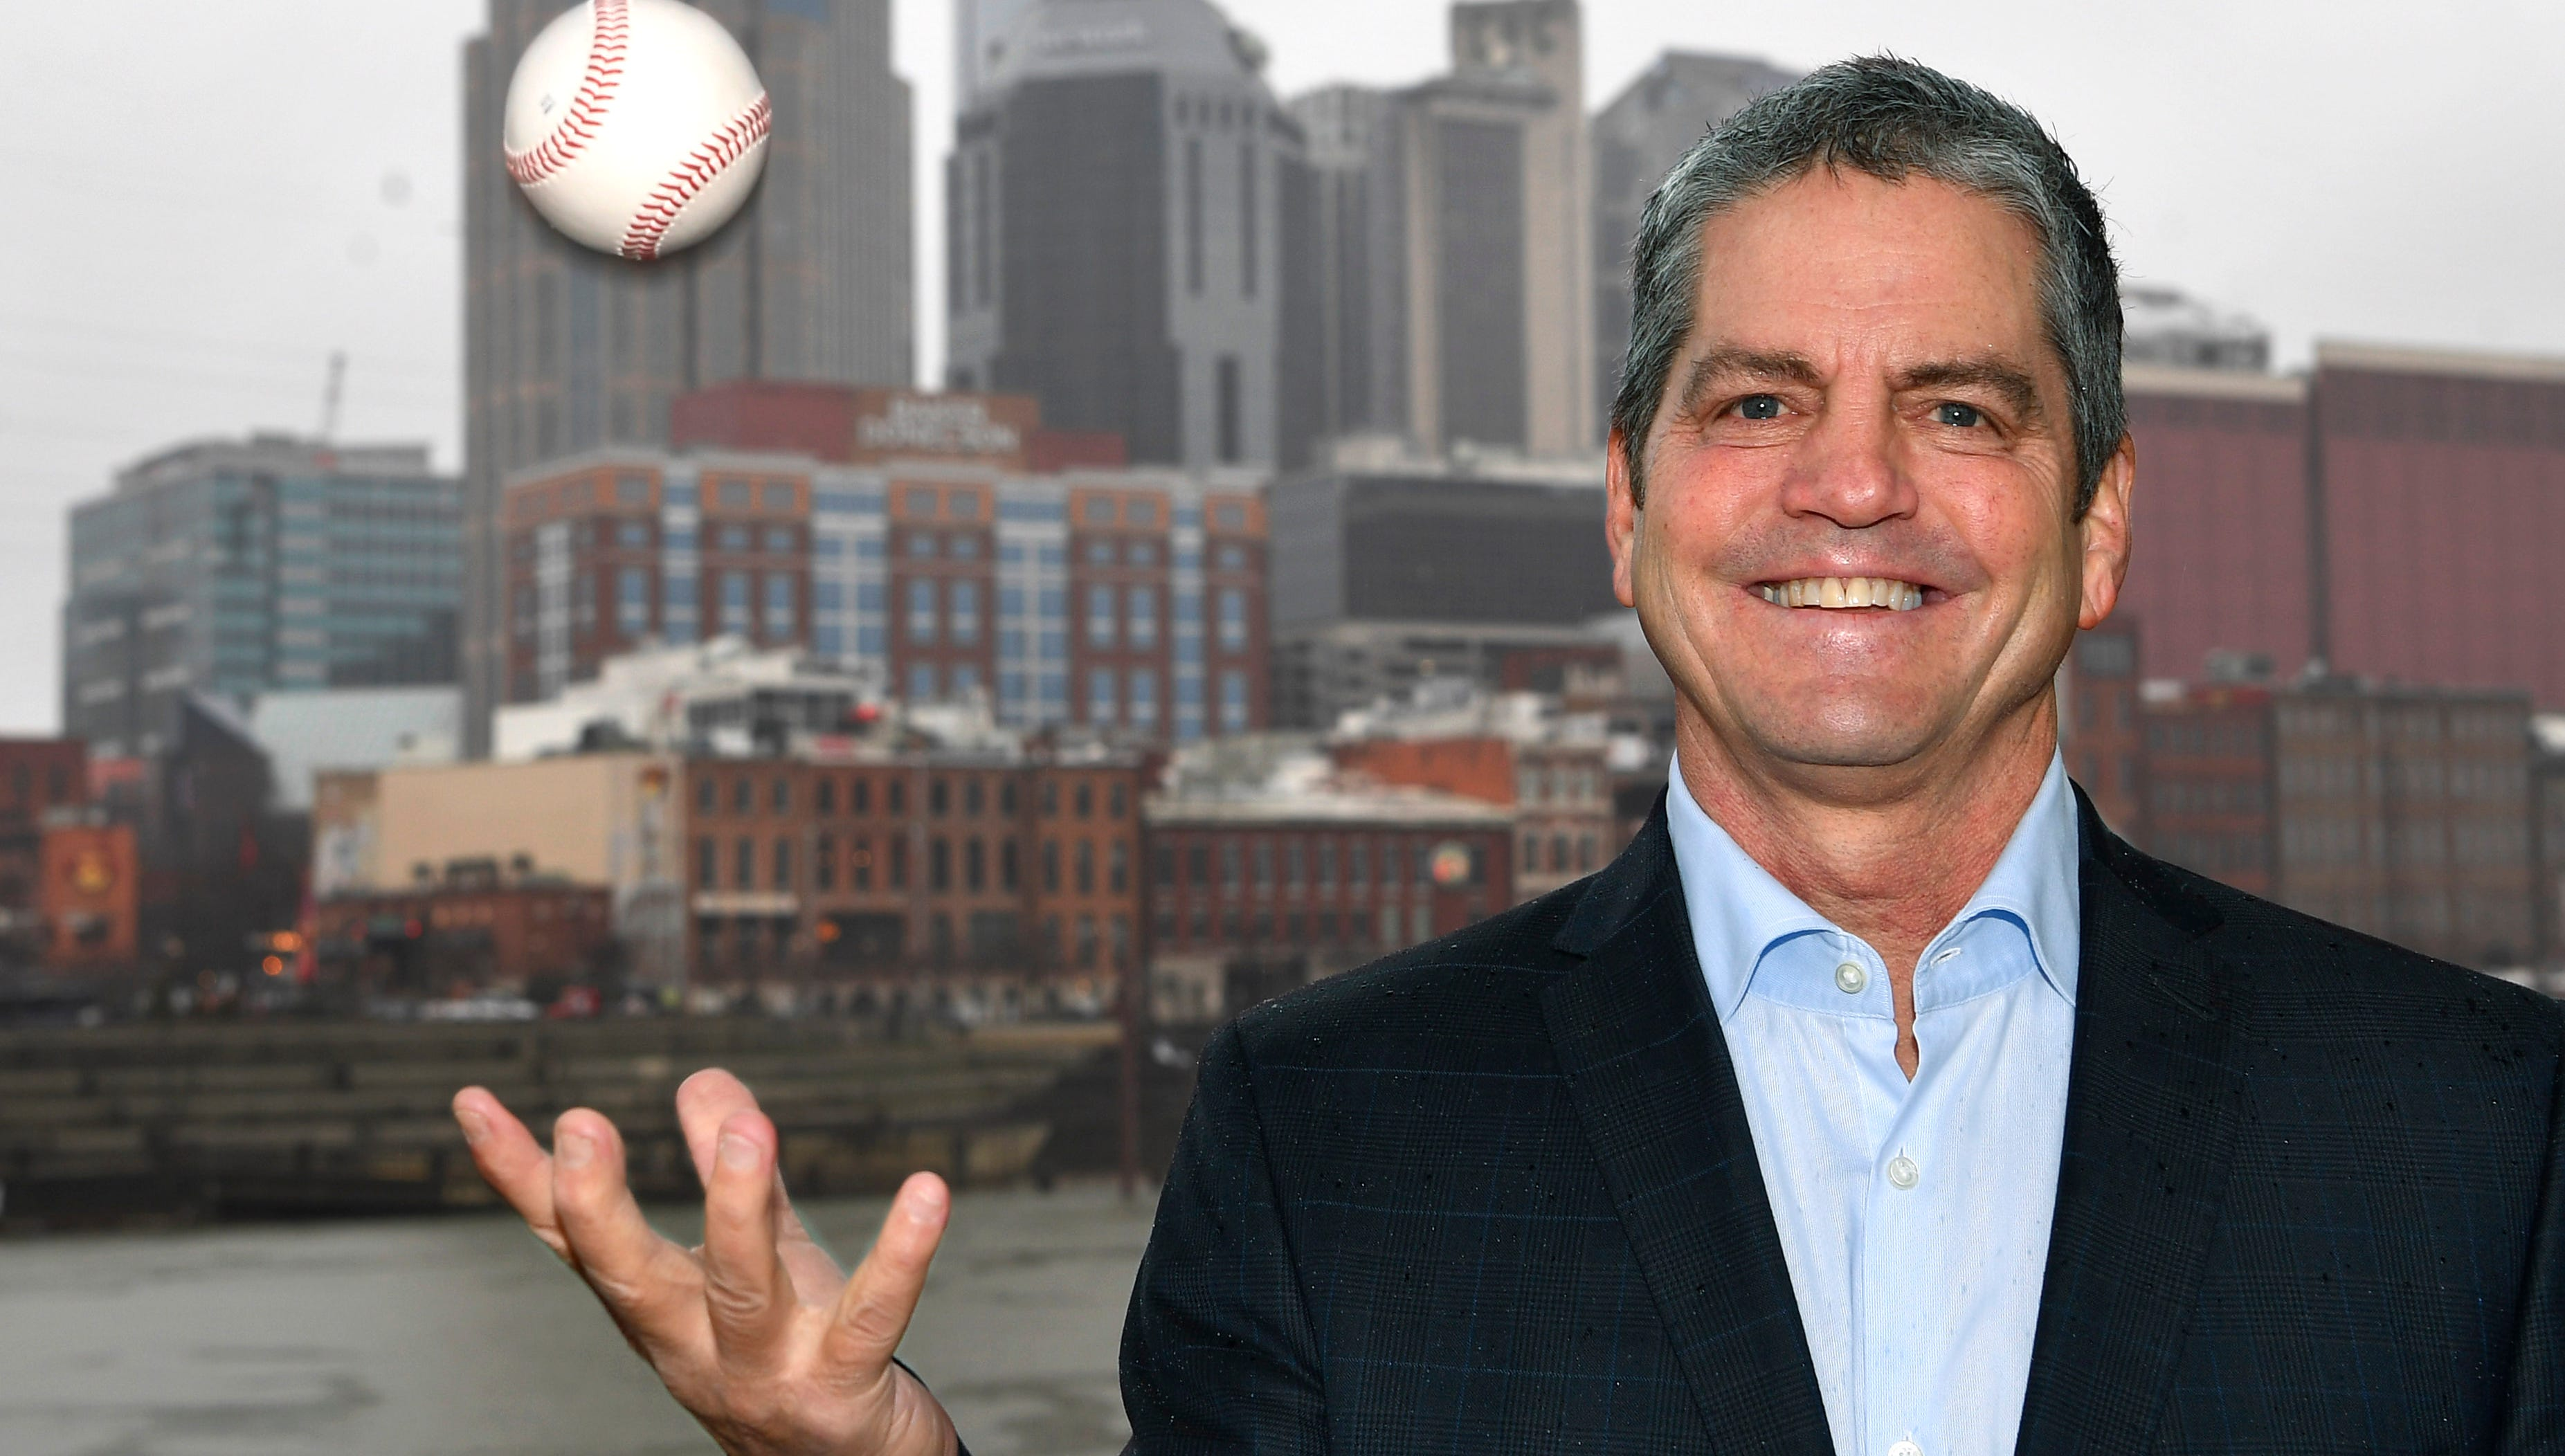 John Loar is a California businessman who has moved to Nashville with the pitch of bringing major league baseball to Music City Thursday Jan. 17, 2019, in Nashville, Tenn.